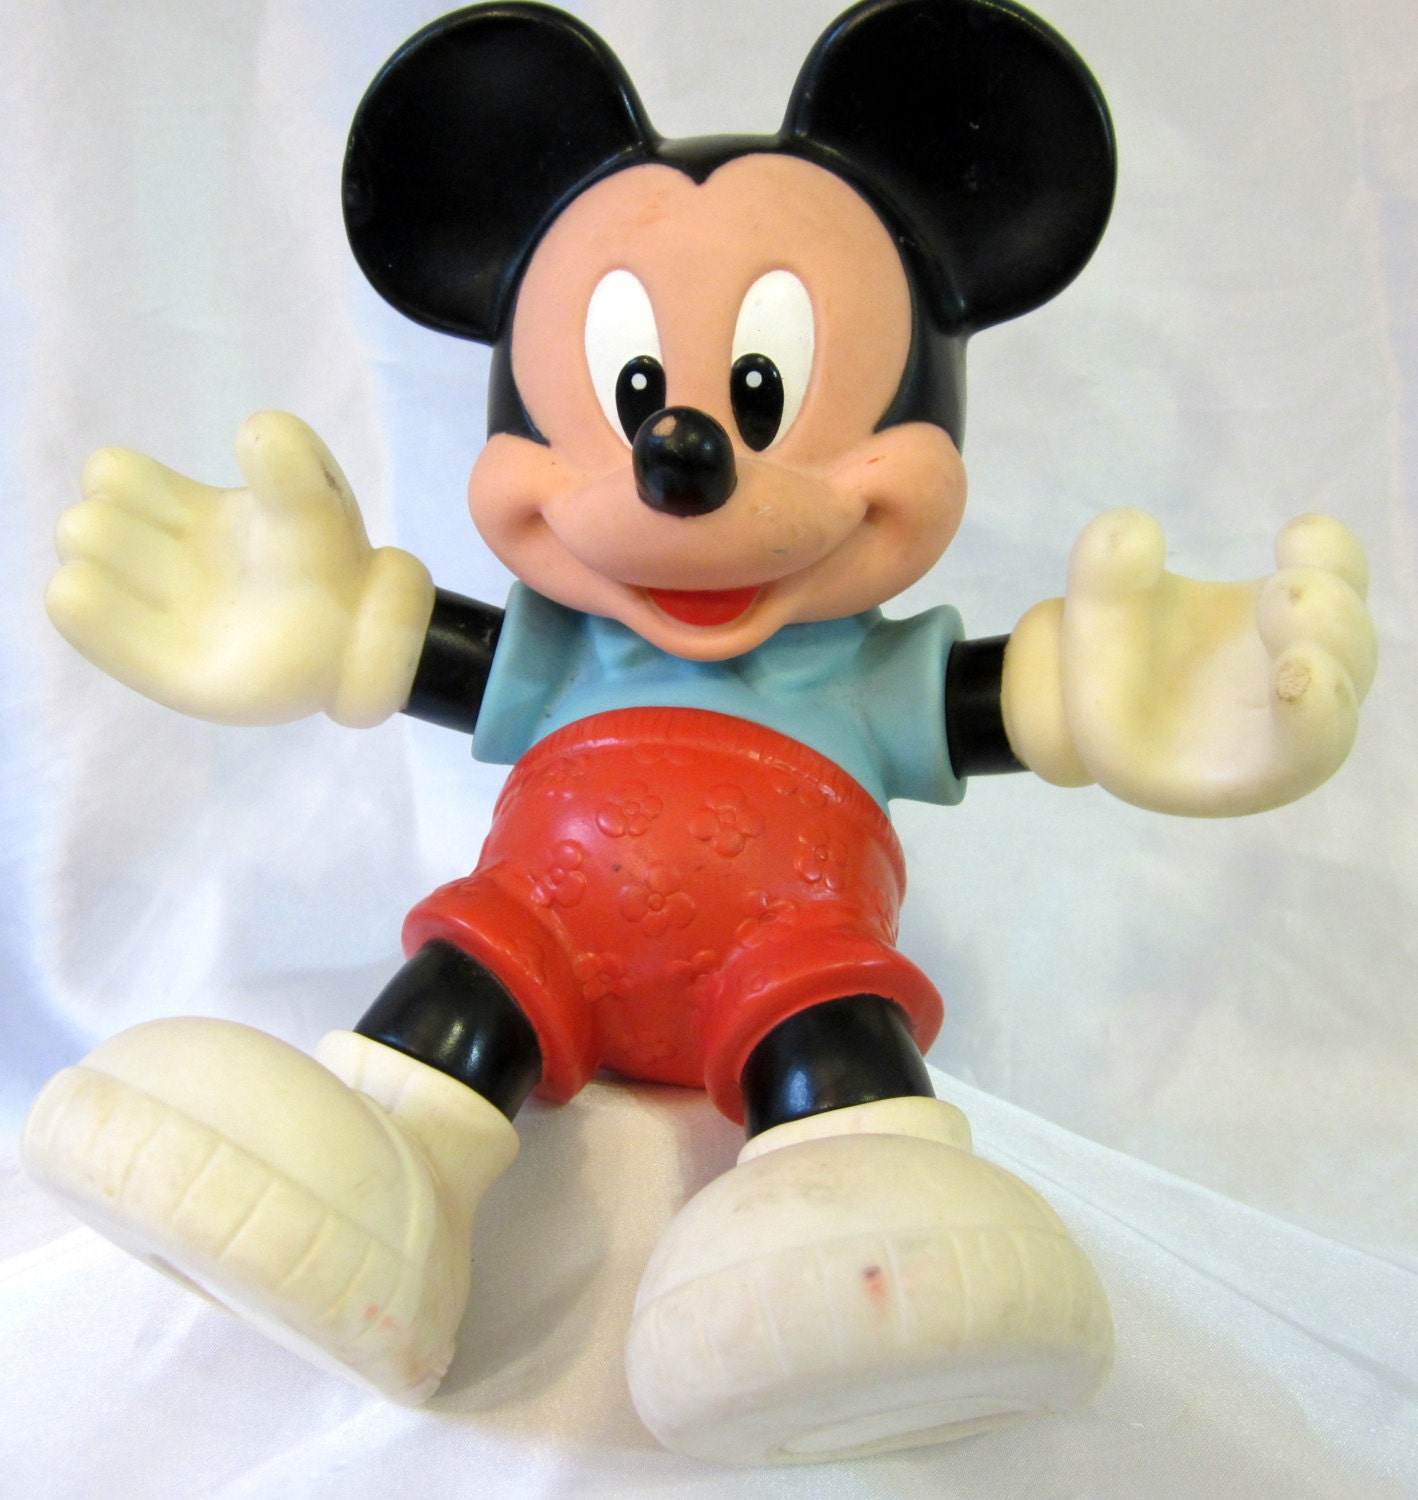 Mickey Mouse Toys : Mickey mouse plastic figure disney moveable doll toy vintage